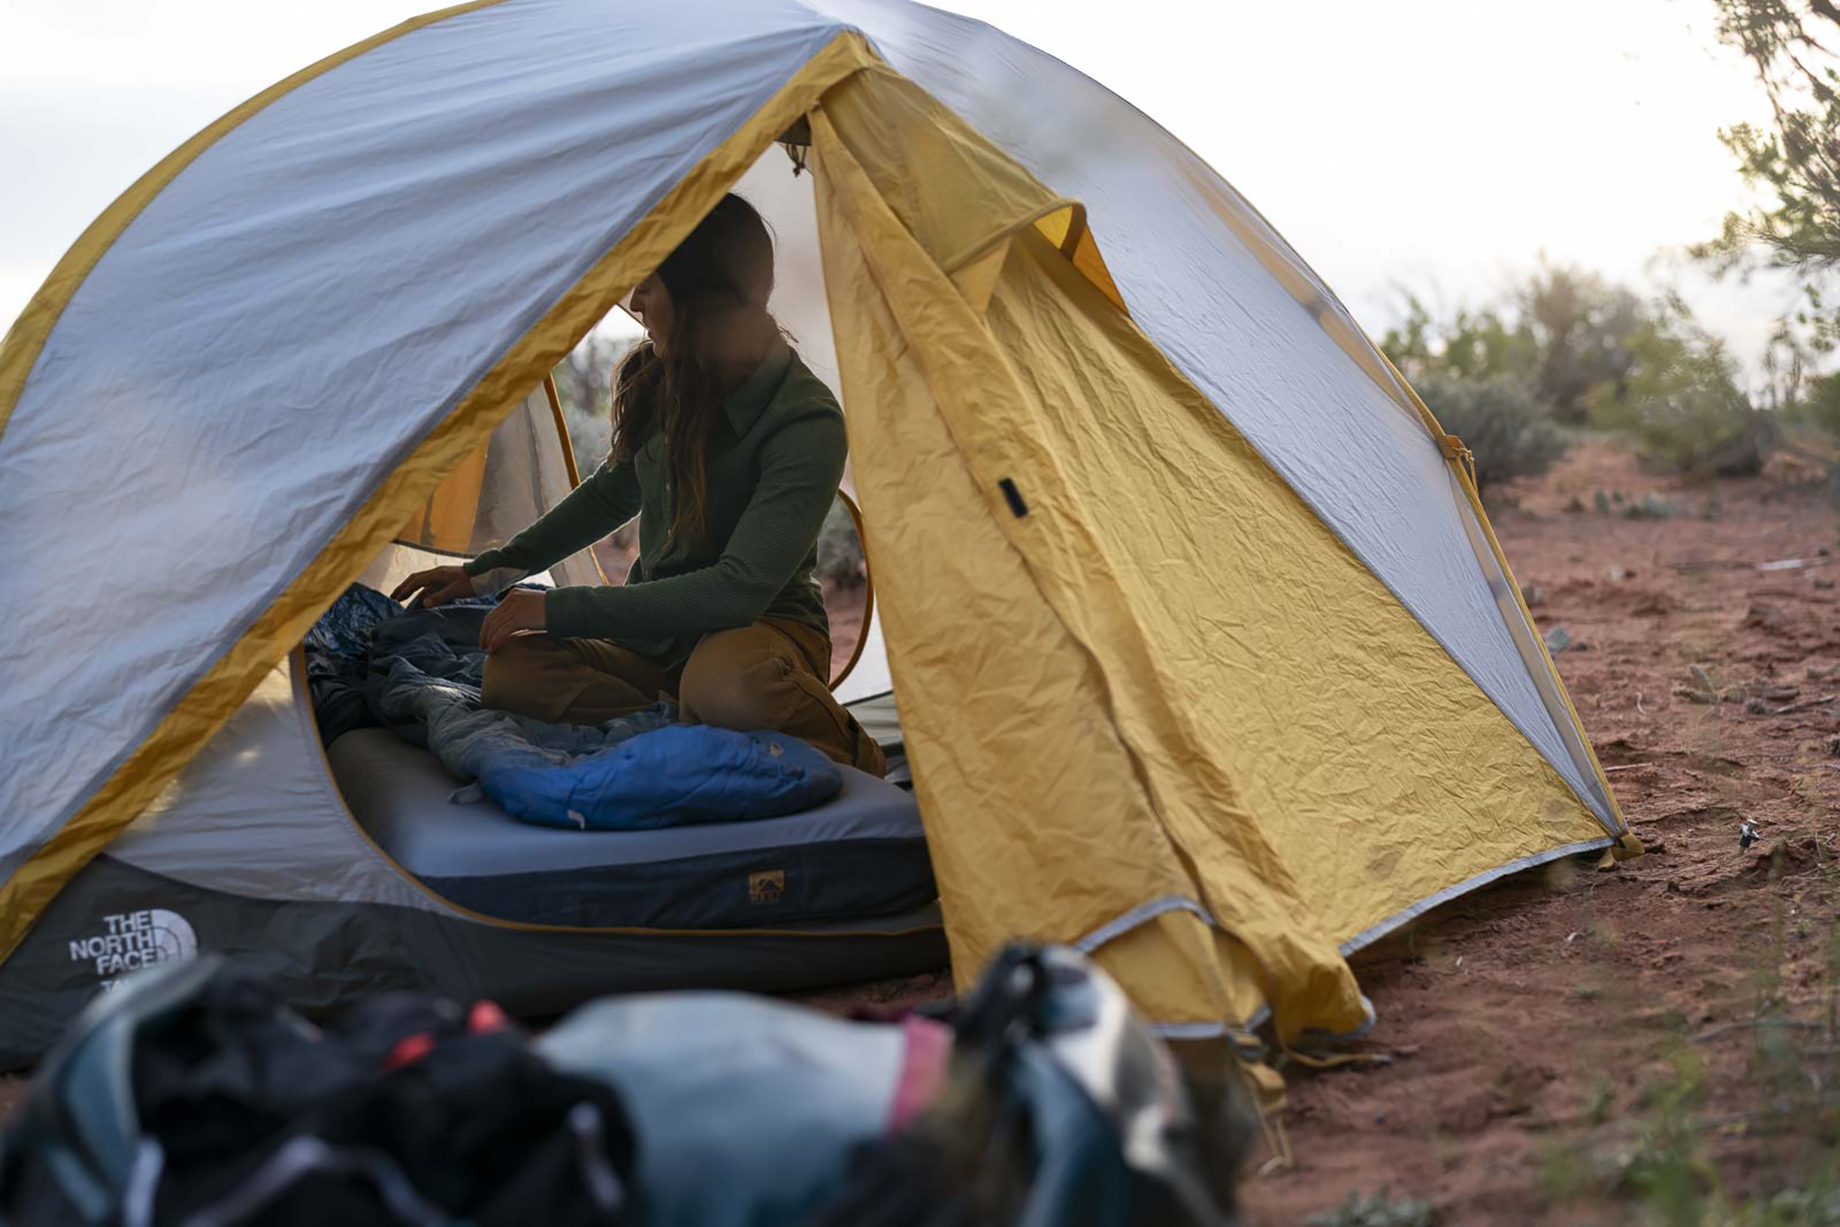 Woman sets up sleeping bag on top of Hest mattress in Moab desert shot by Motofish